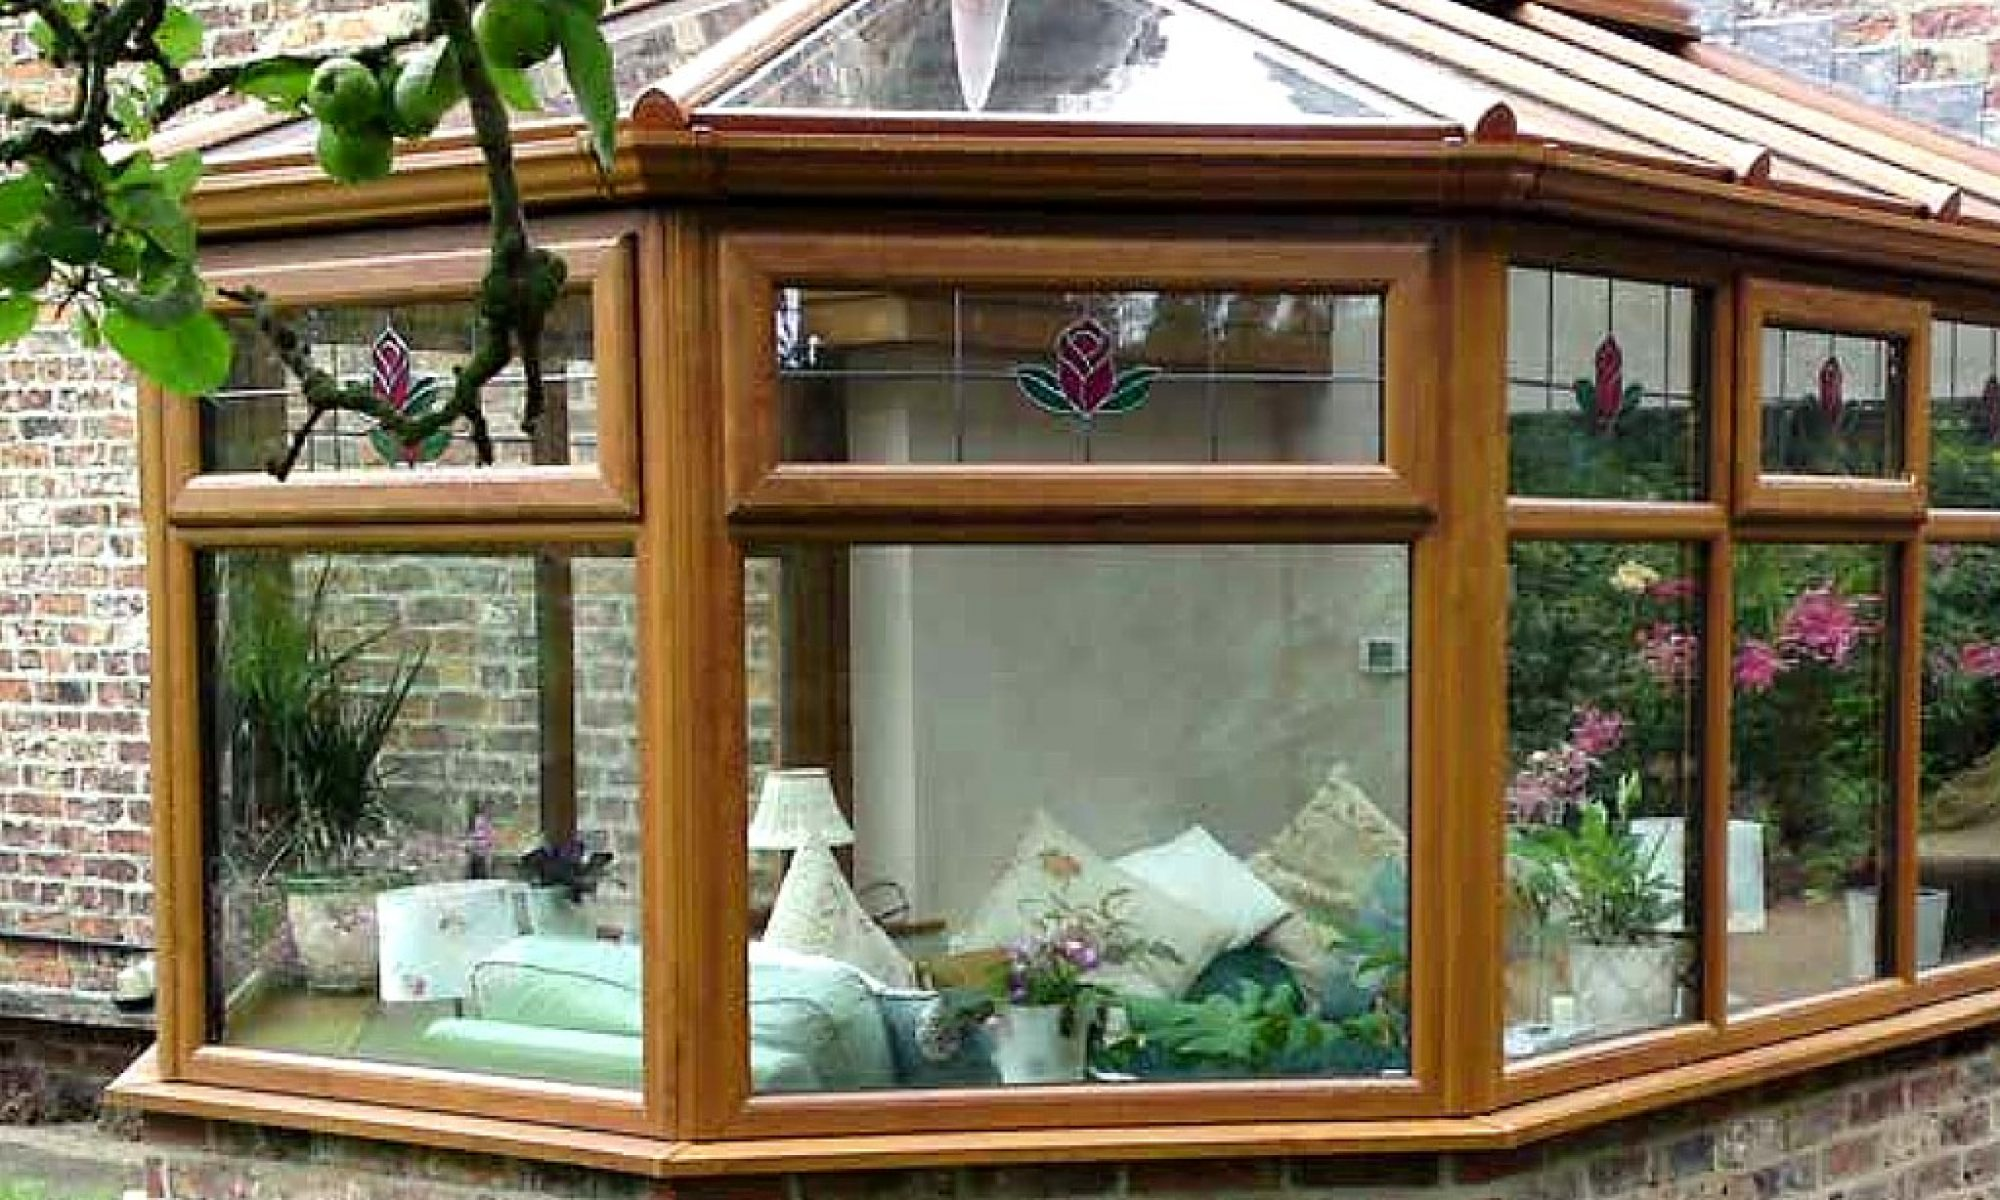 B&B Windows Ltd